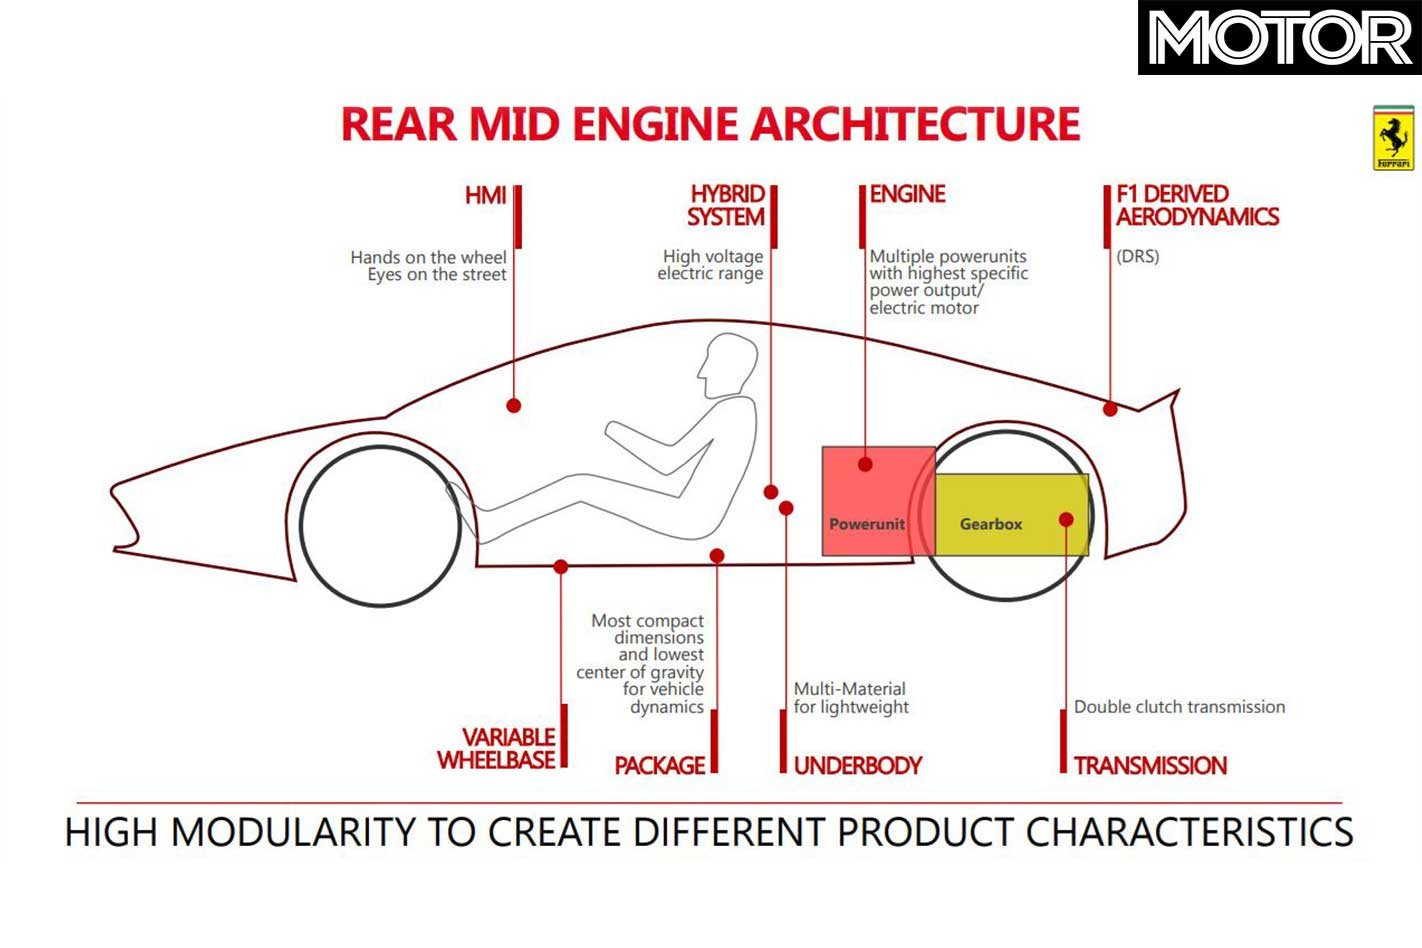 Priorities for the sports car platform include reducing the weight and size  through multi-material underbody and improved packaging, which will be ...